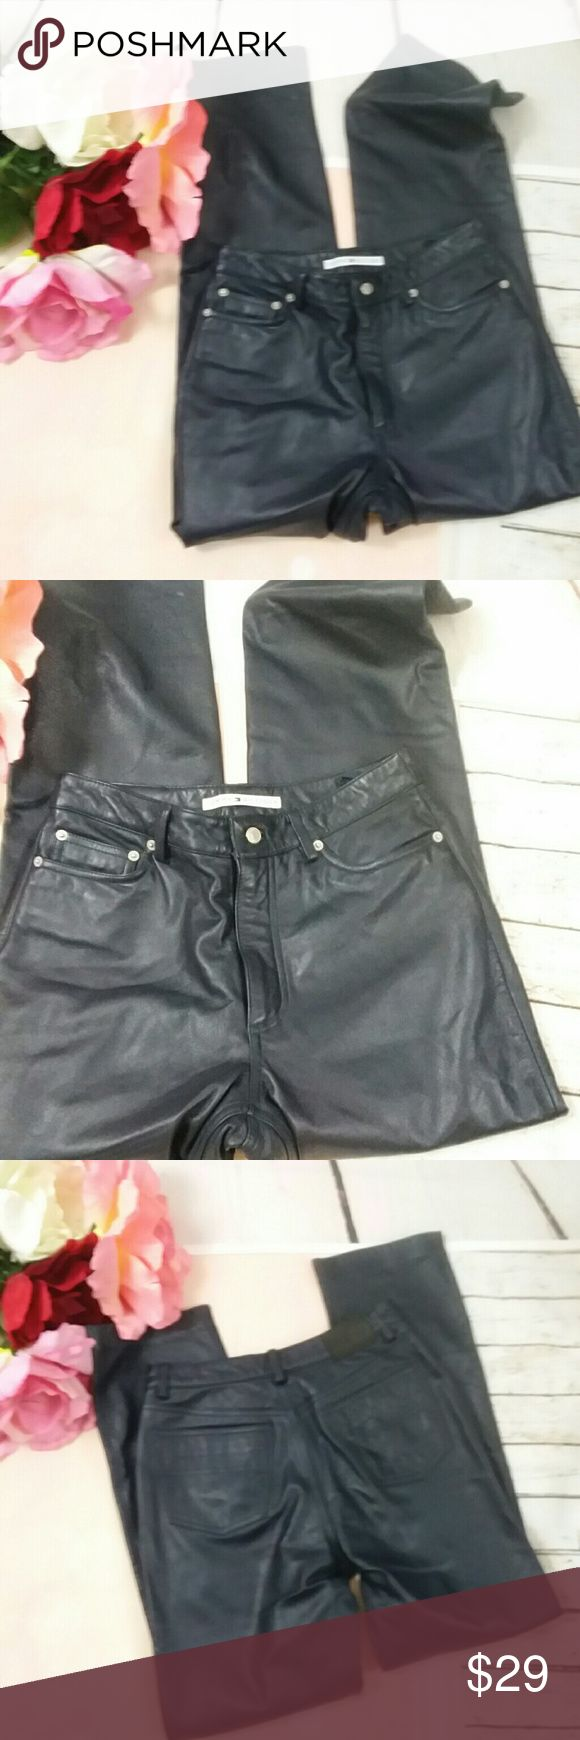 Ladies Tommy Hilfiger Black Leather Jeans Sz 6 This is a pair of ladies black leather Tommy Hilfiger jeans. They are line. They are ladies size 6. The waist is 28 in. The rise is 10 in. The inseam is 30 in. The area across the cuff of the pant measures 8 in. They are sold without stains or flaws. They are in great preowned condition Tommy Hilfiger Jeans Straight Leg